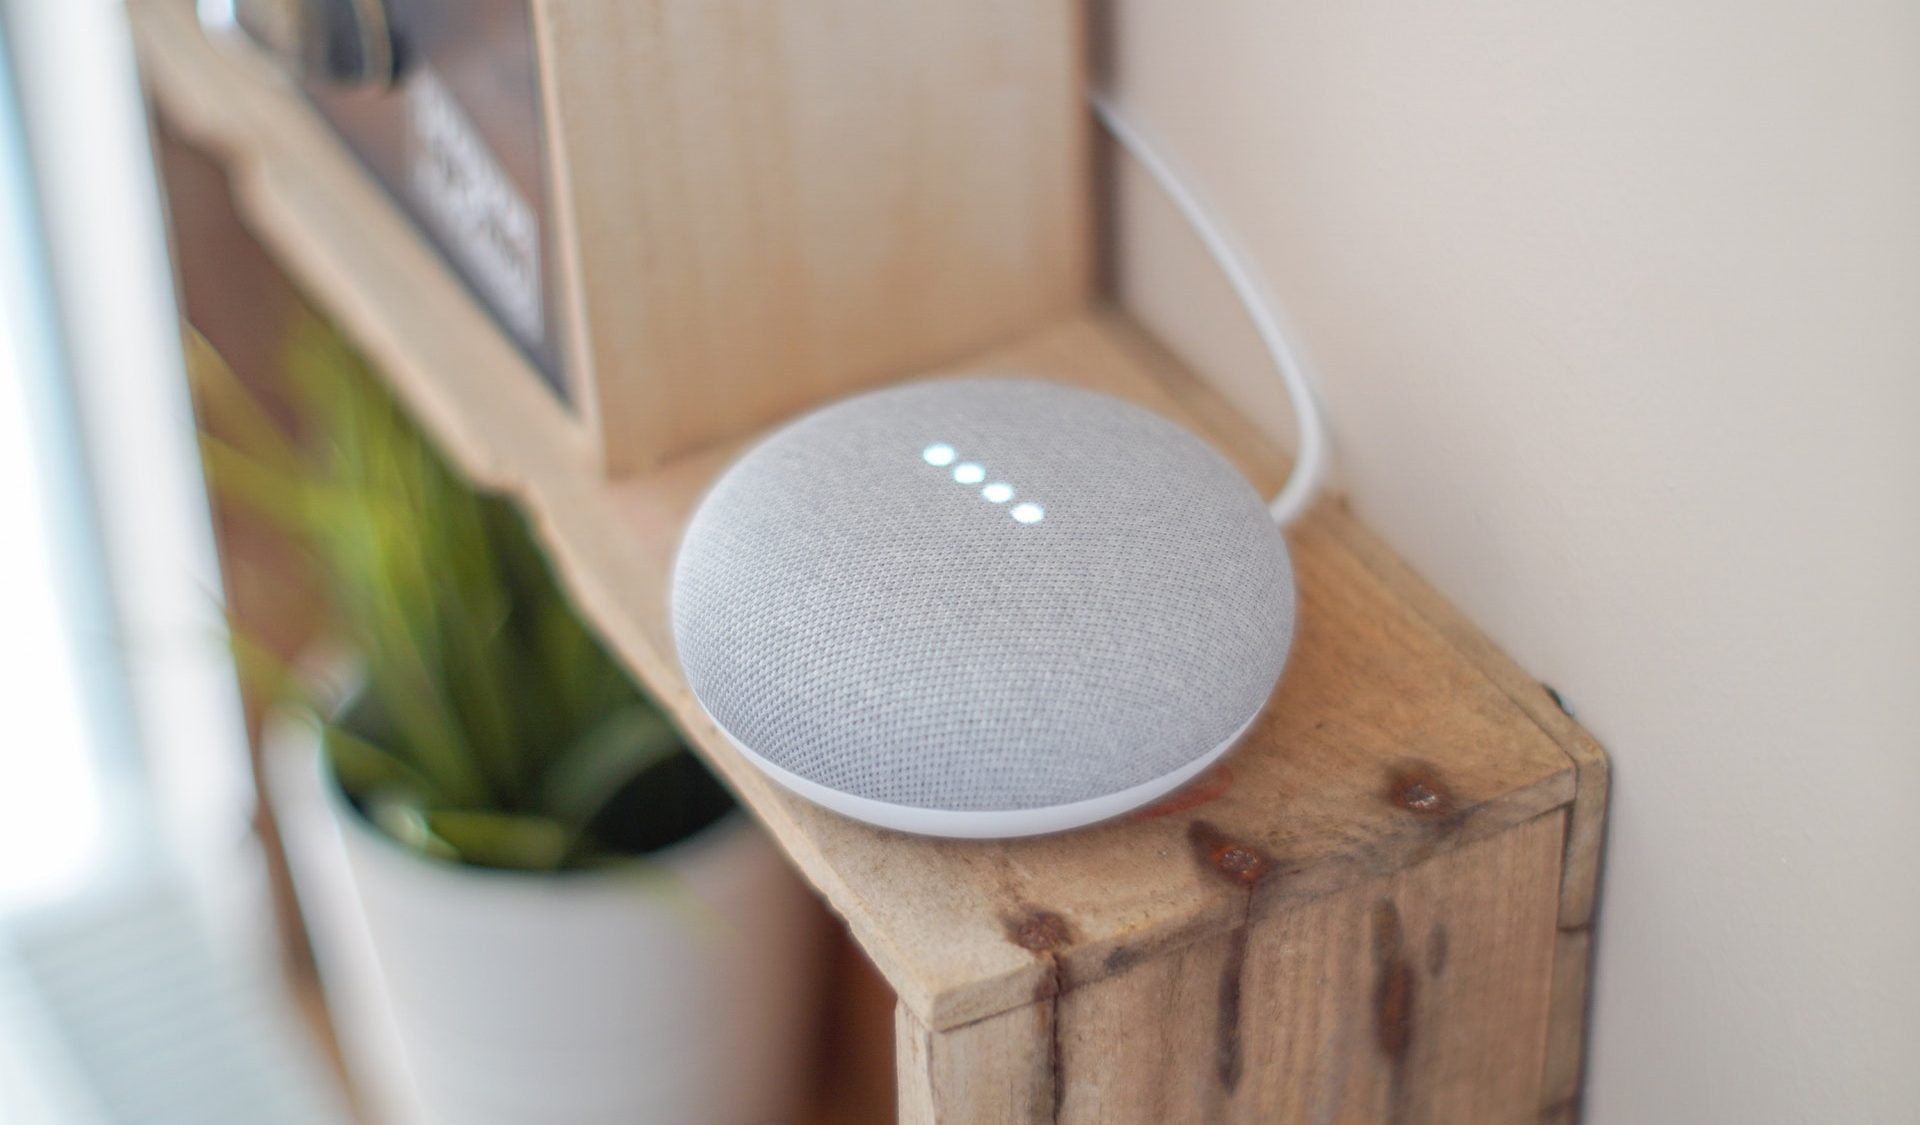 Google's Nest Home Mini surfaces at the FCC and confirms its existence